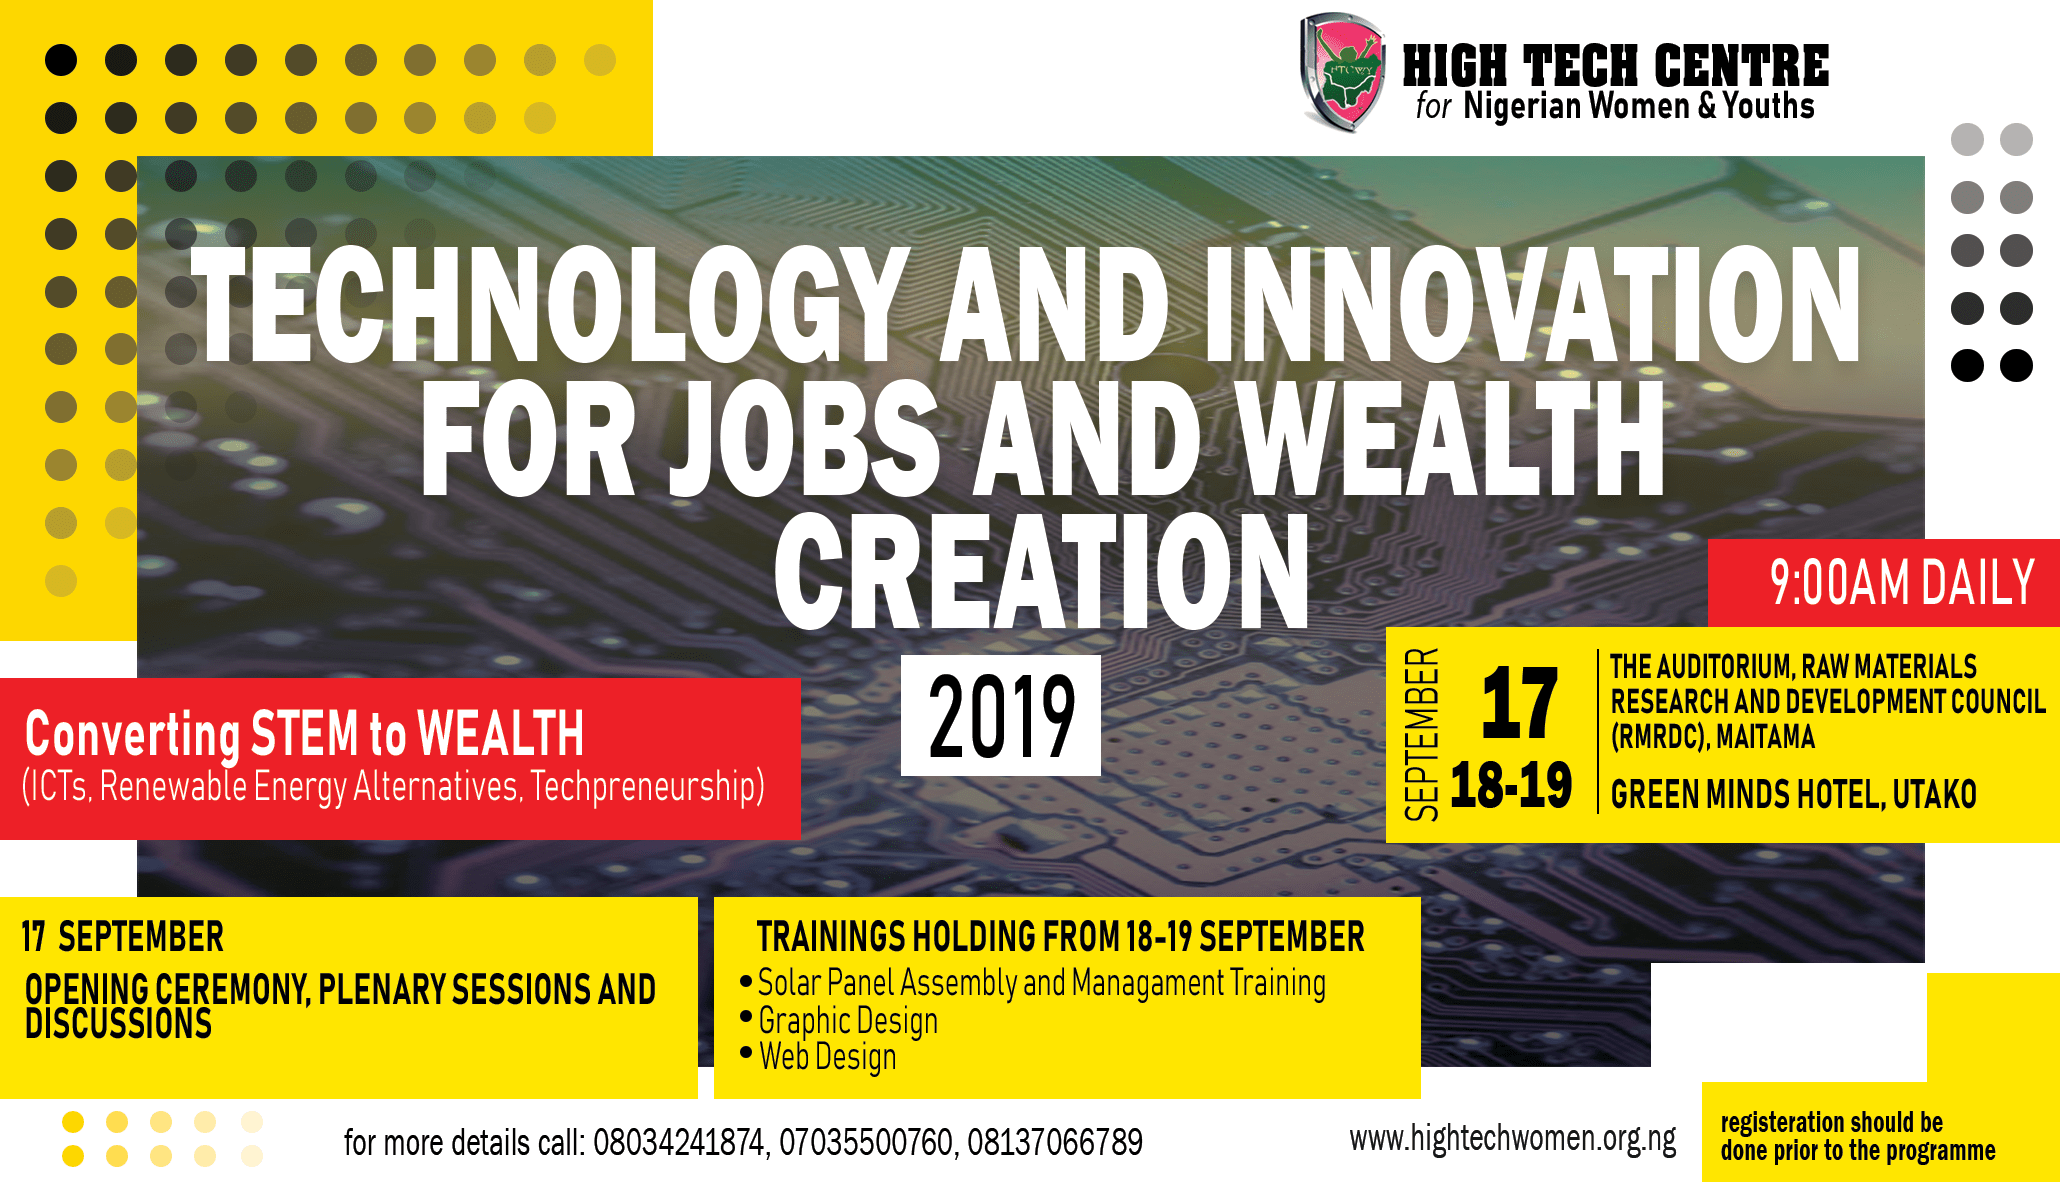 TECHNOLOGY AND INNOVATION FOR JOBS AND WEALTH CREATION 2019